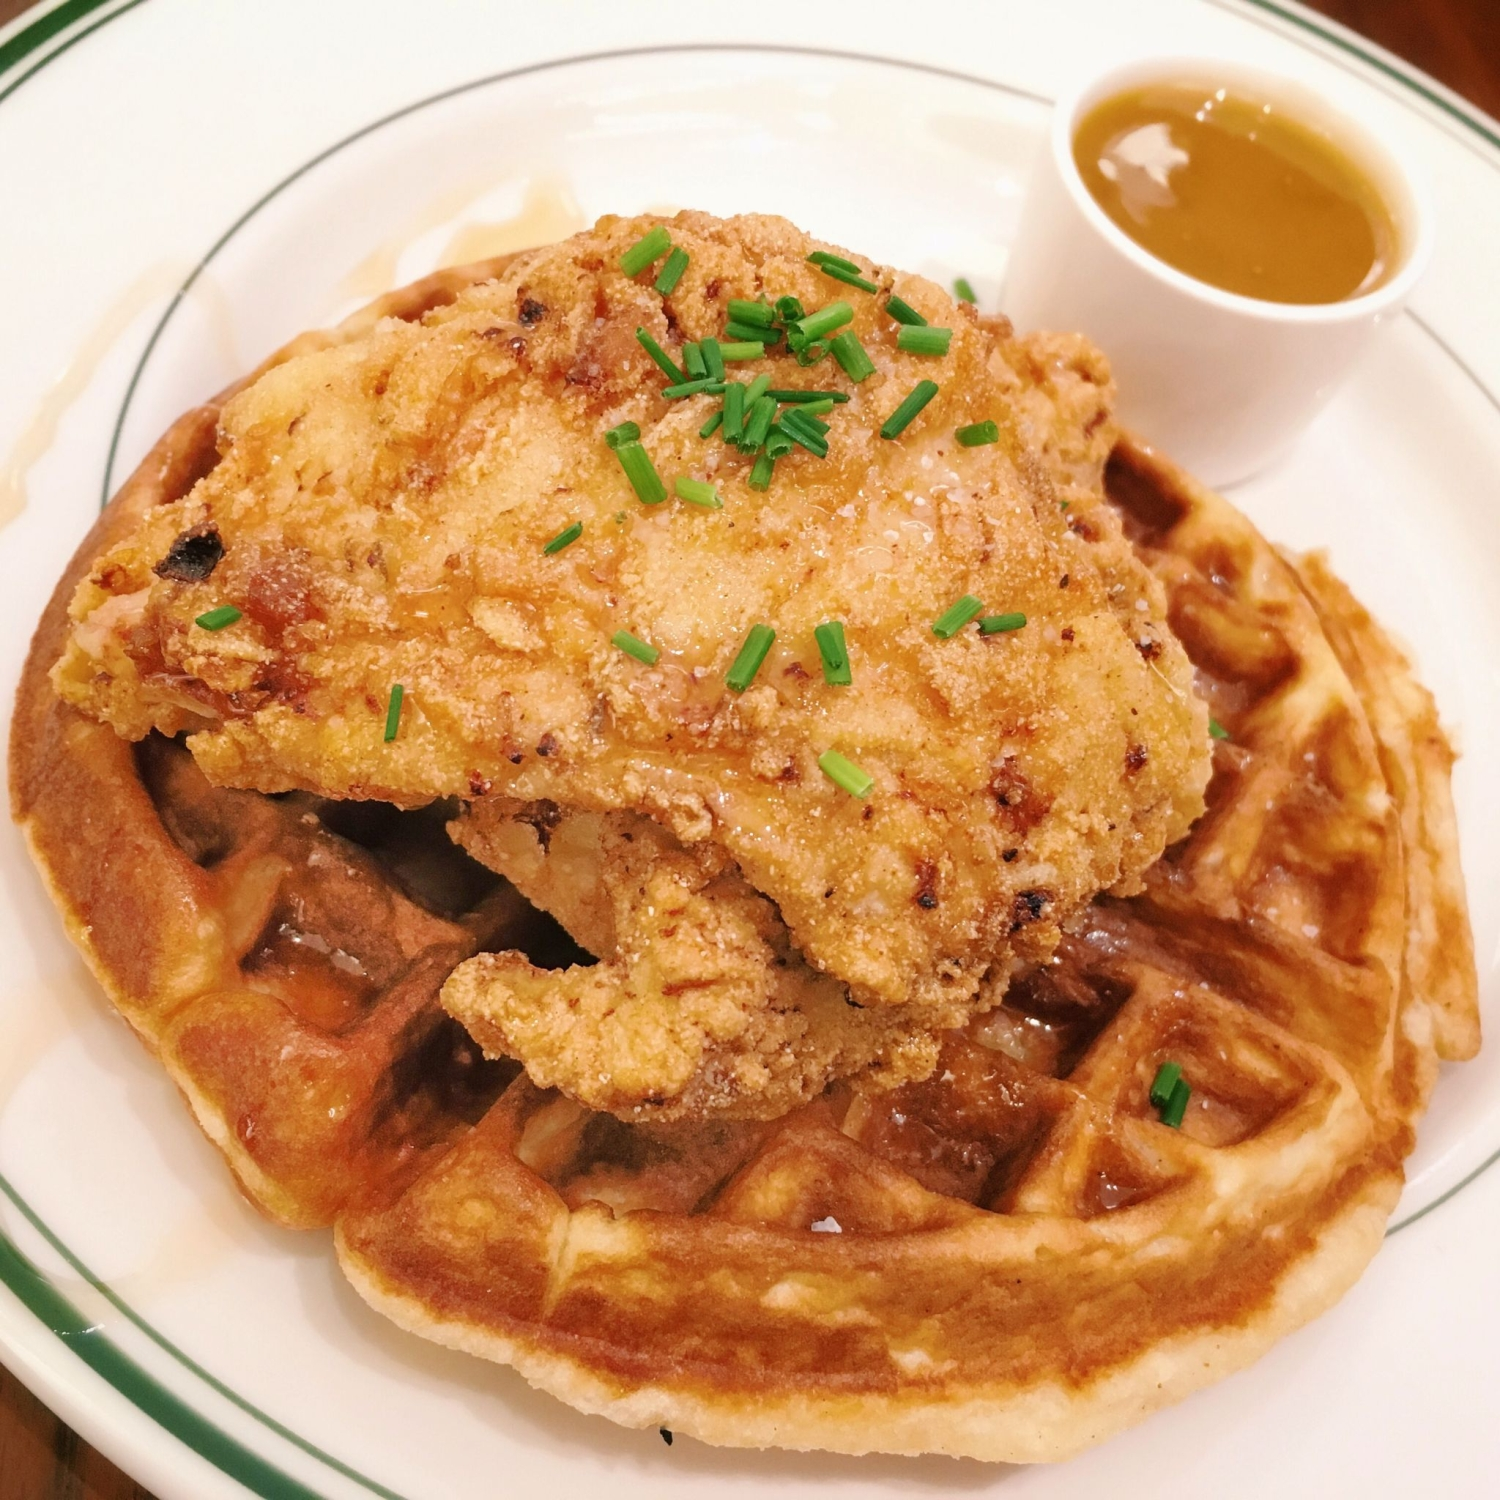 Chicken & Waffles - Clinton Street Baking Company